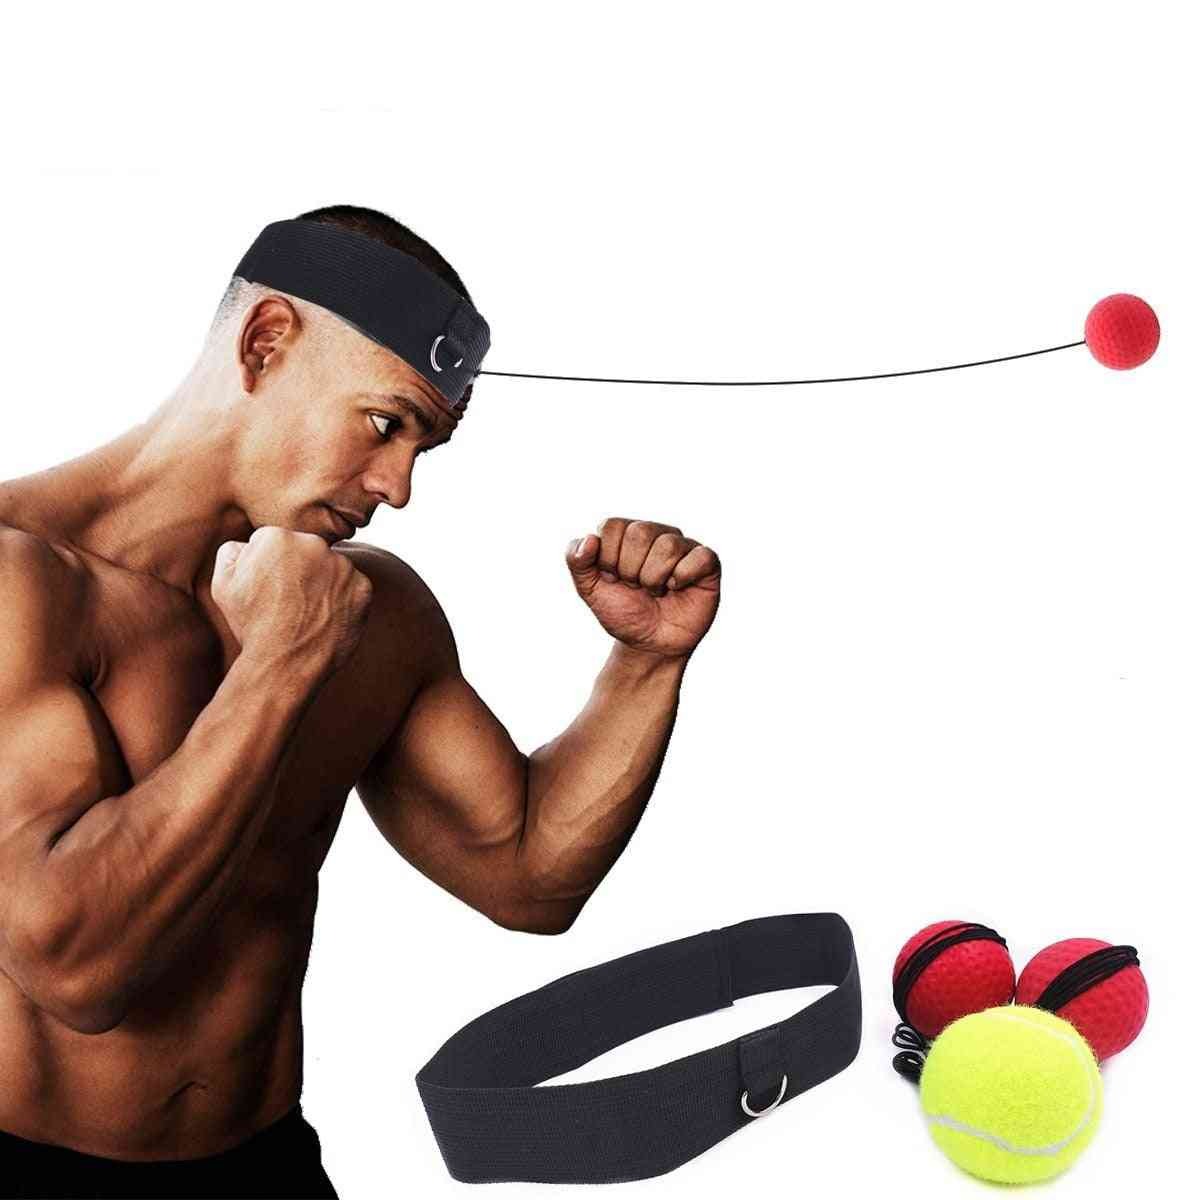 Punching Speed Reaction Agility Training Difficulty Level Boxing Balls With Adjustable Headband